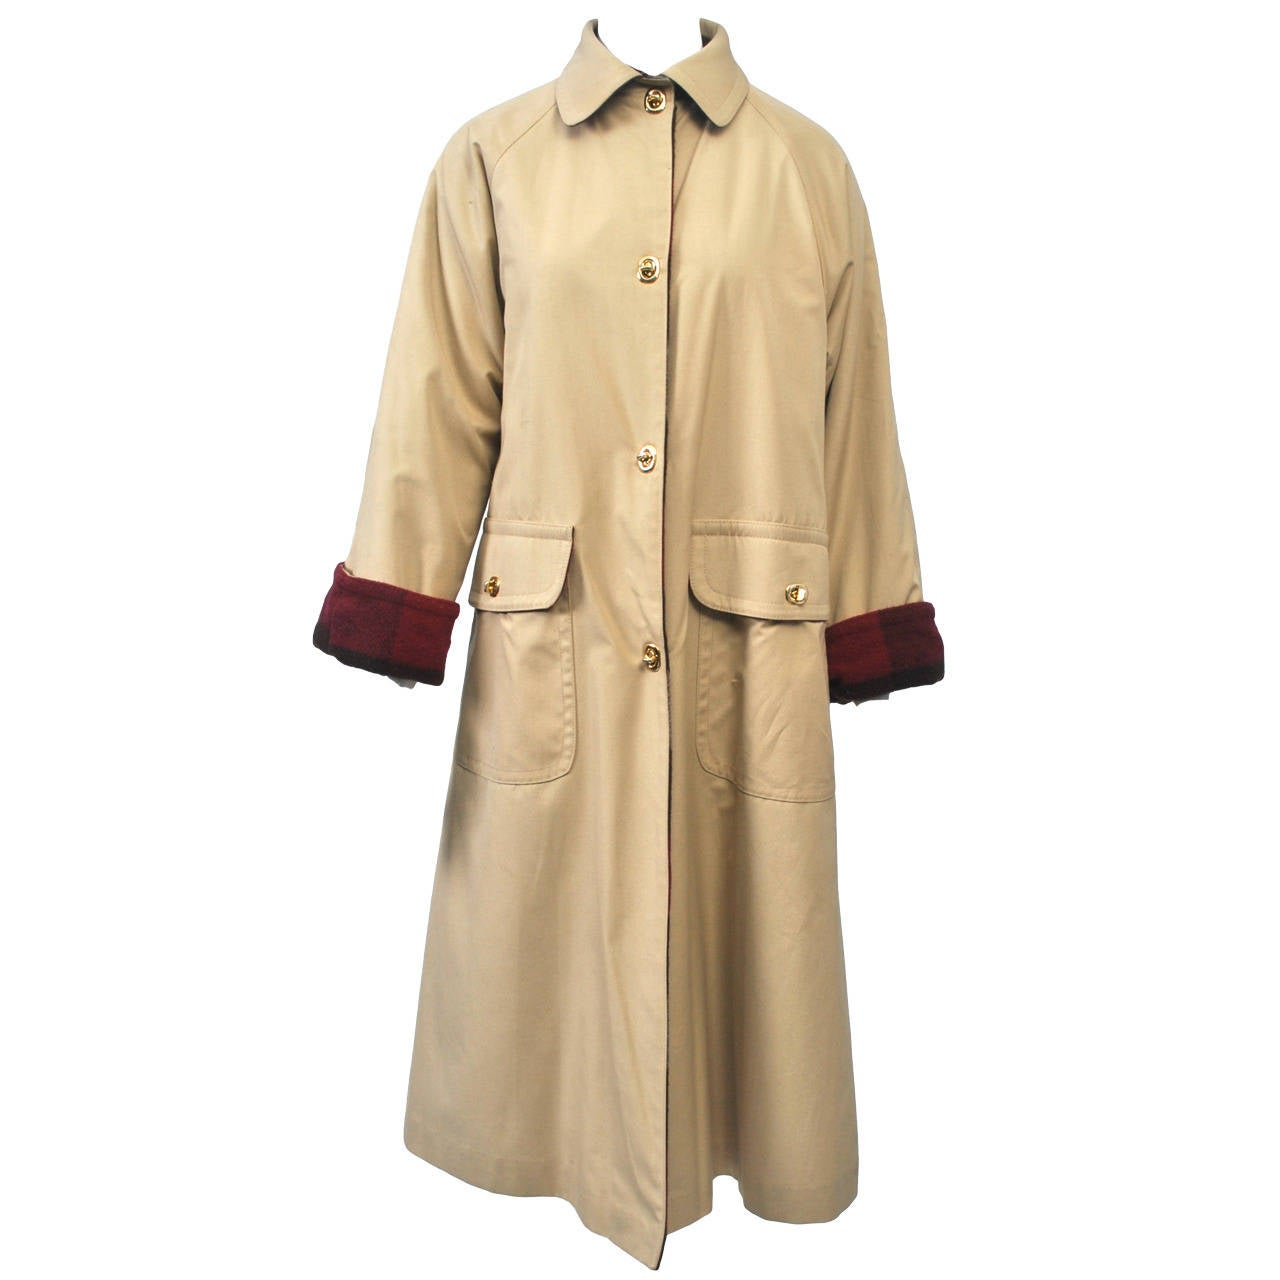 Free shipping BOTH ways on all weather coats women, from our vast selection of styles. Fast delivery, and 24/7/ real-person service with a smile. Click or call